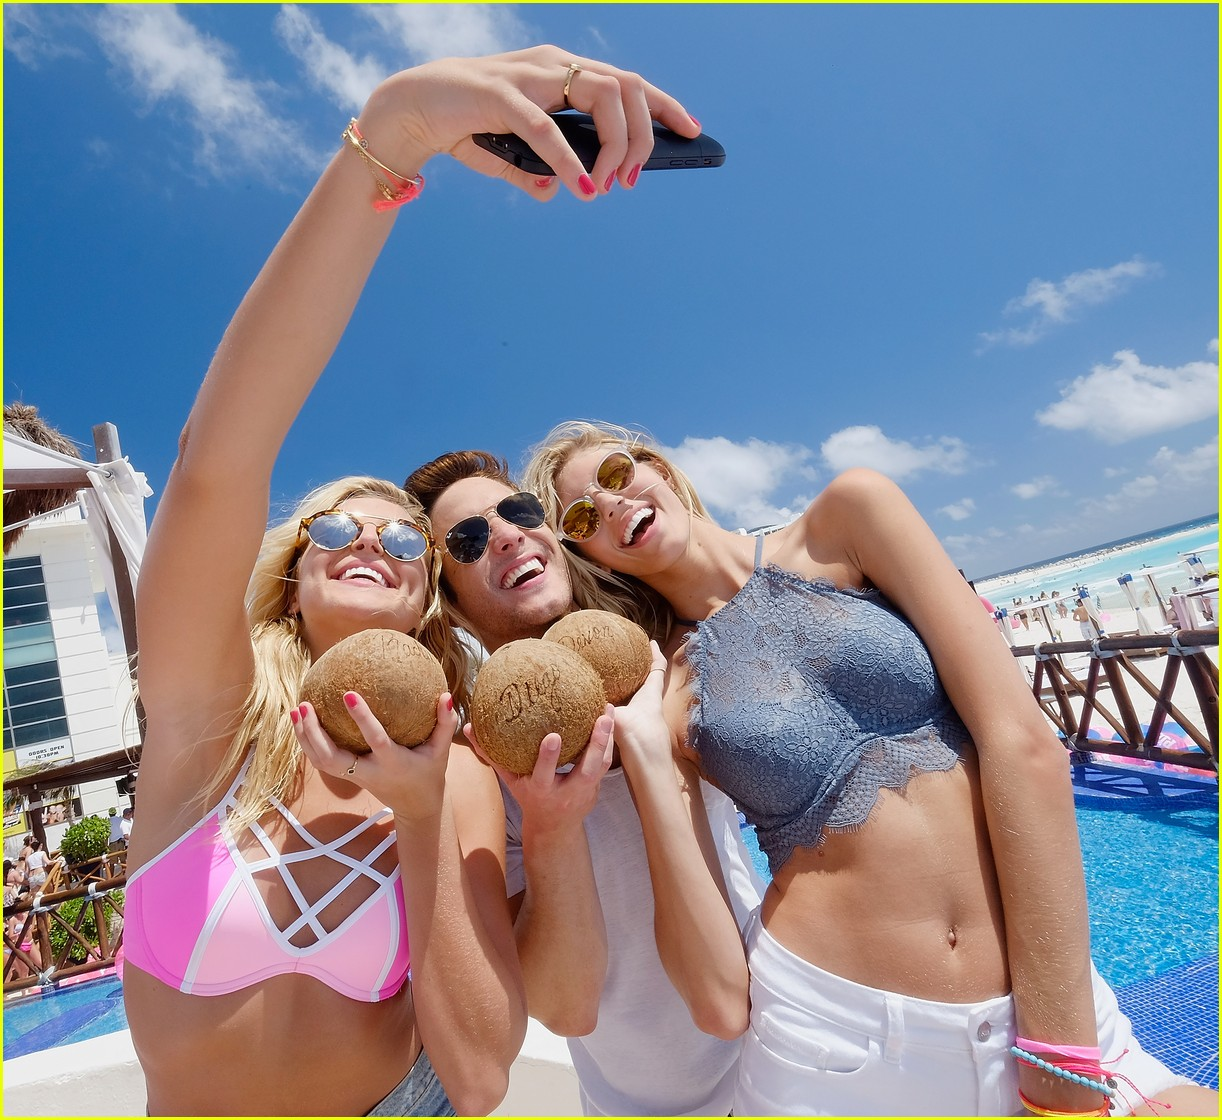 Go Boneta Lives The Spring Break Dream At Pink Nation S Beach Party Photo 942863 Gallery Just Jared Jr